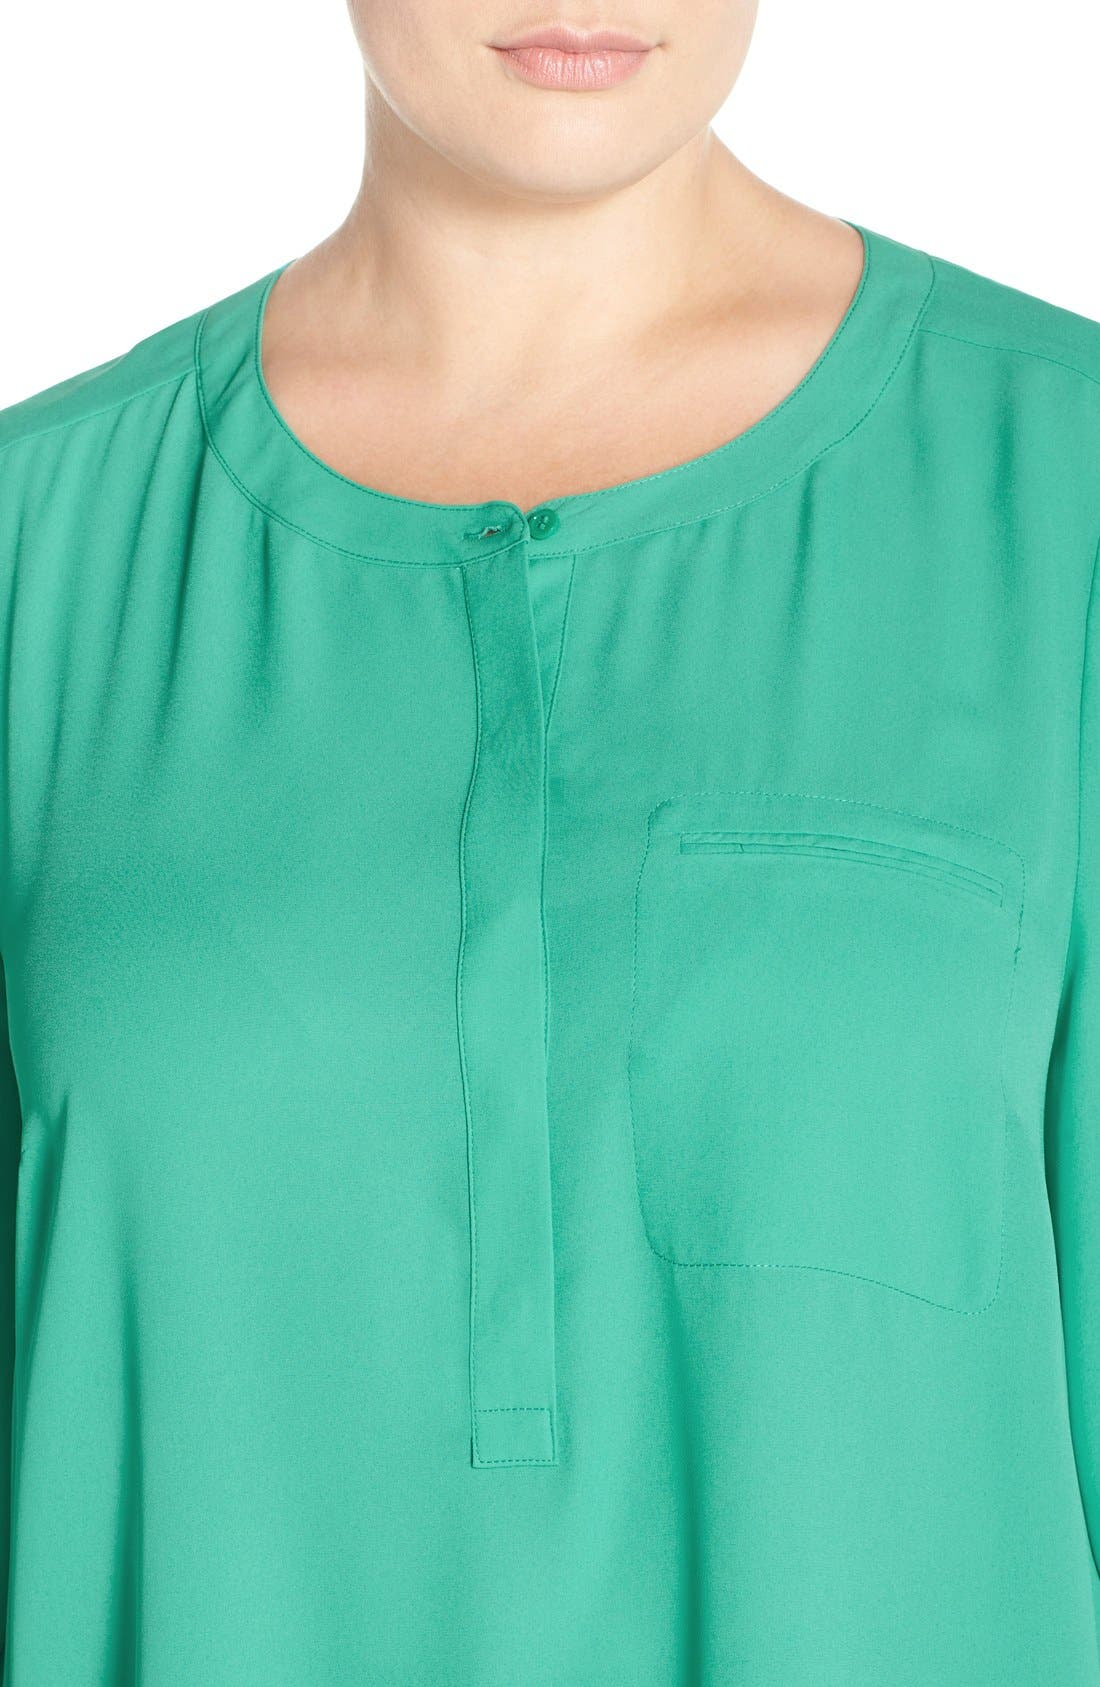 Henley Top,                             Alternate thumbnail 353, color,